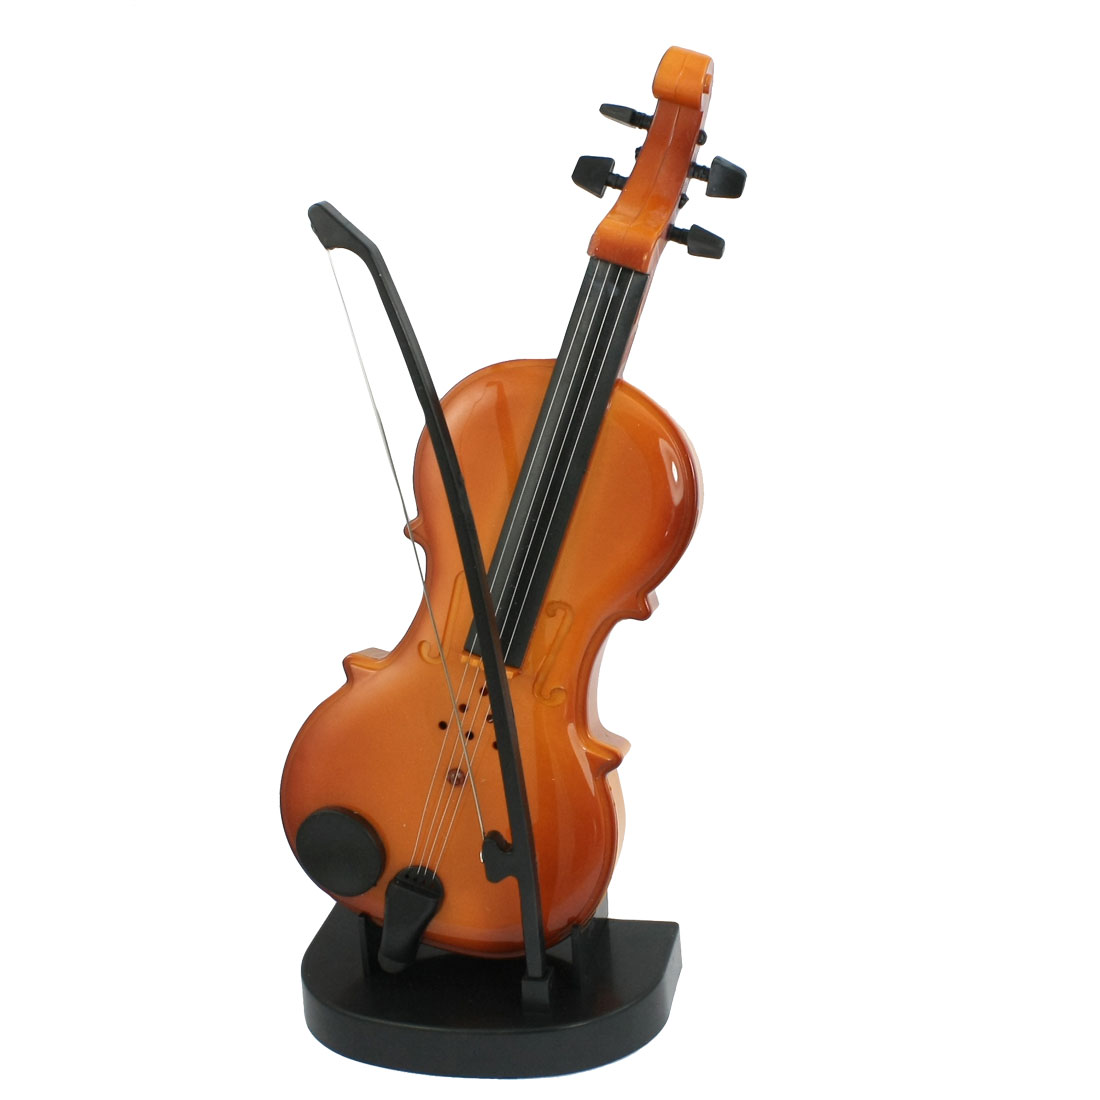 Battery power simulation mini violin shape music box for children battery power simulation mini violin shape music box for children kids brown walmart ccuart Image collections